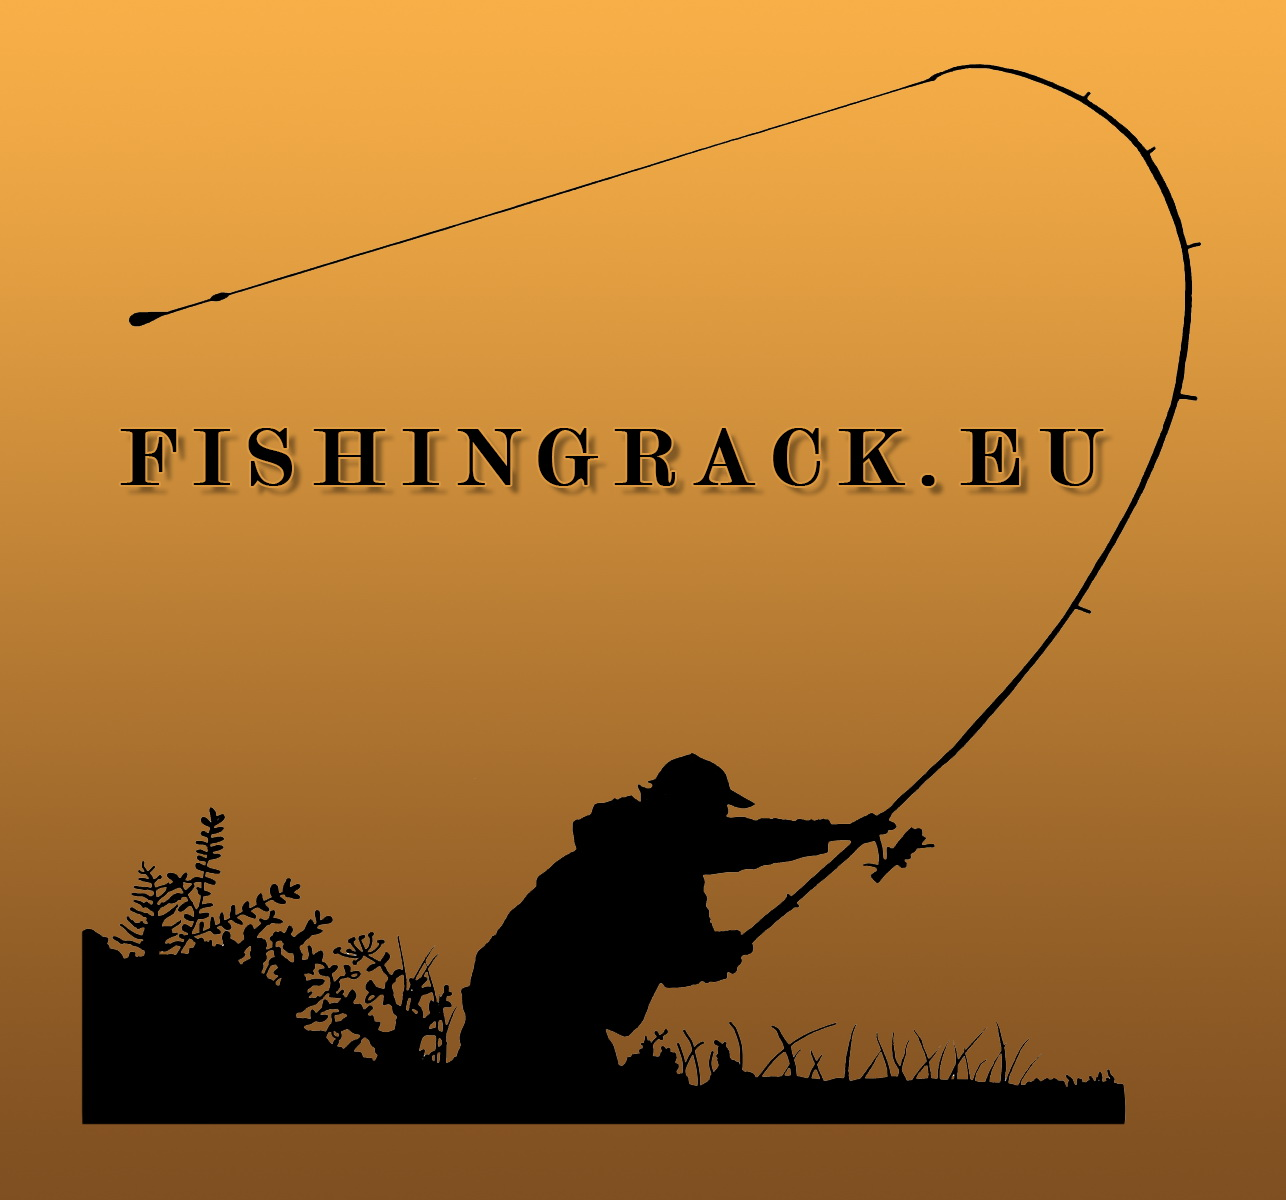 FishingRack